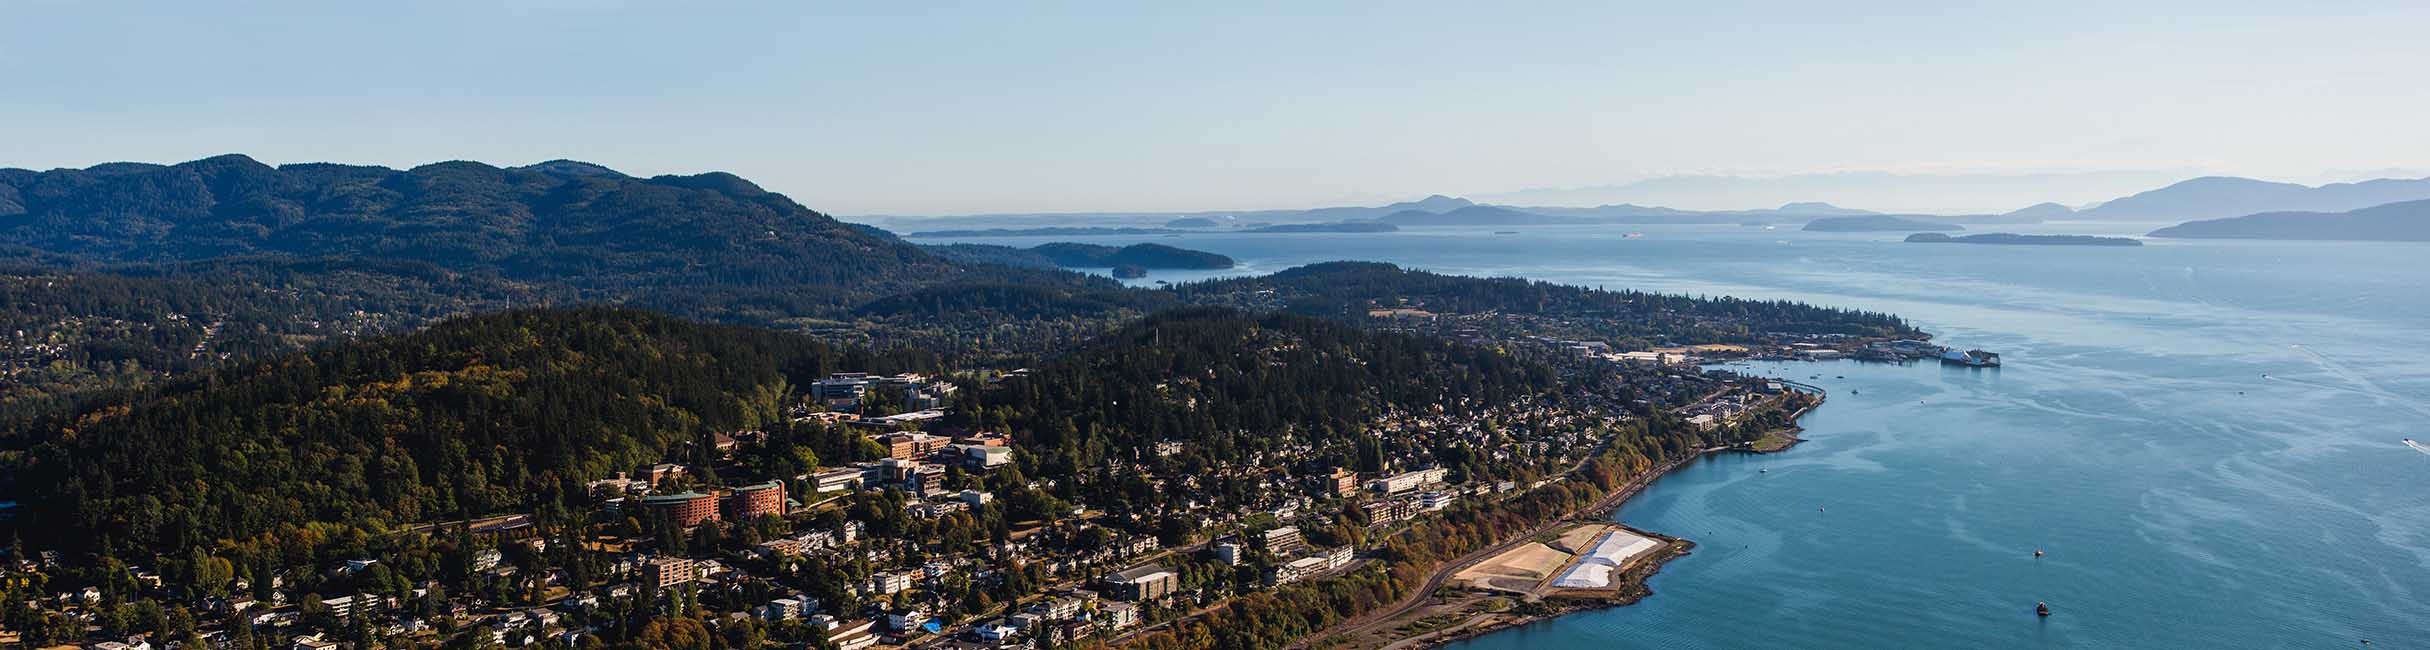 Bellingham Bay coastline with hills covered in trees and buildings